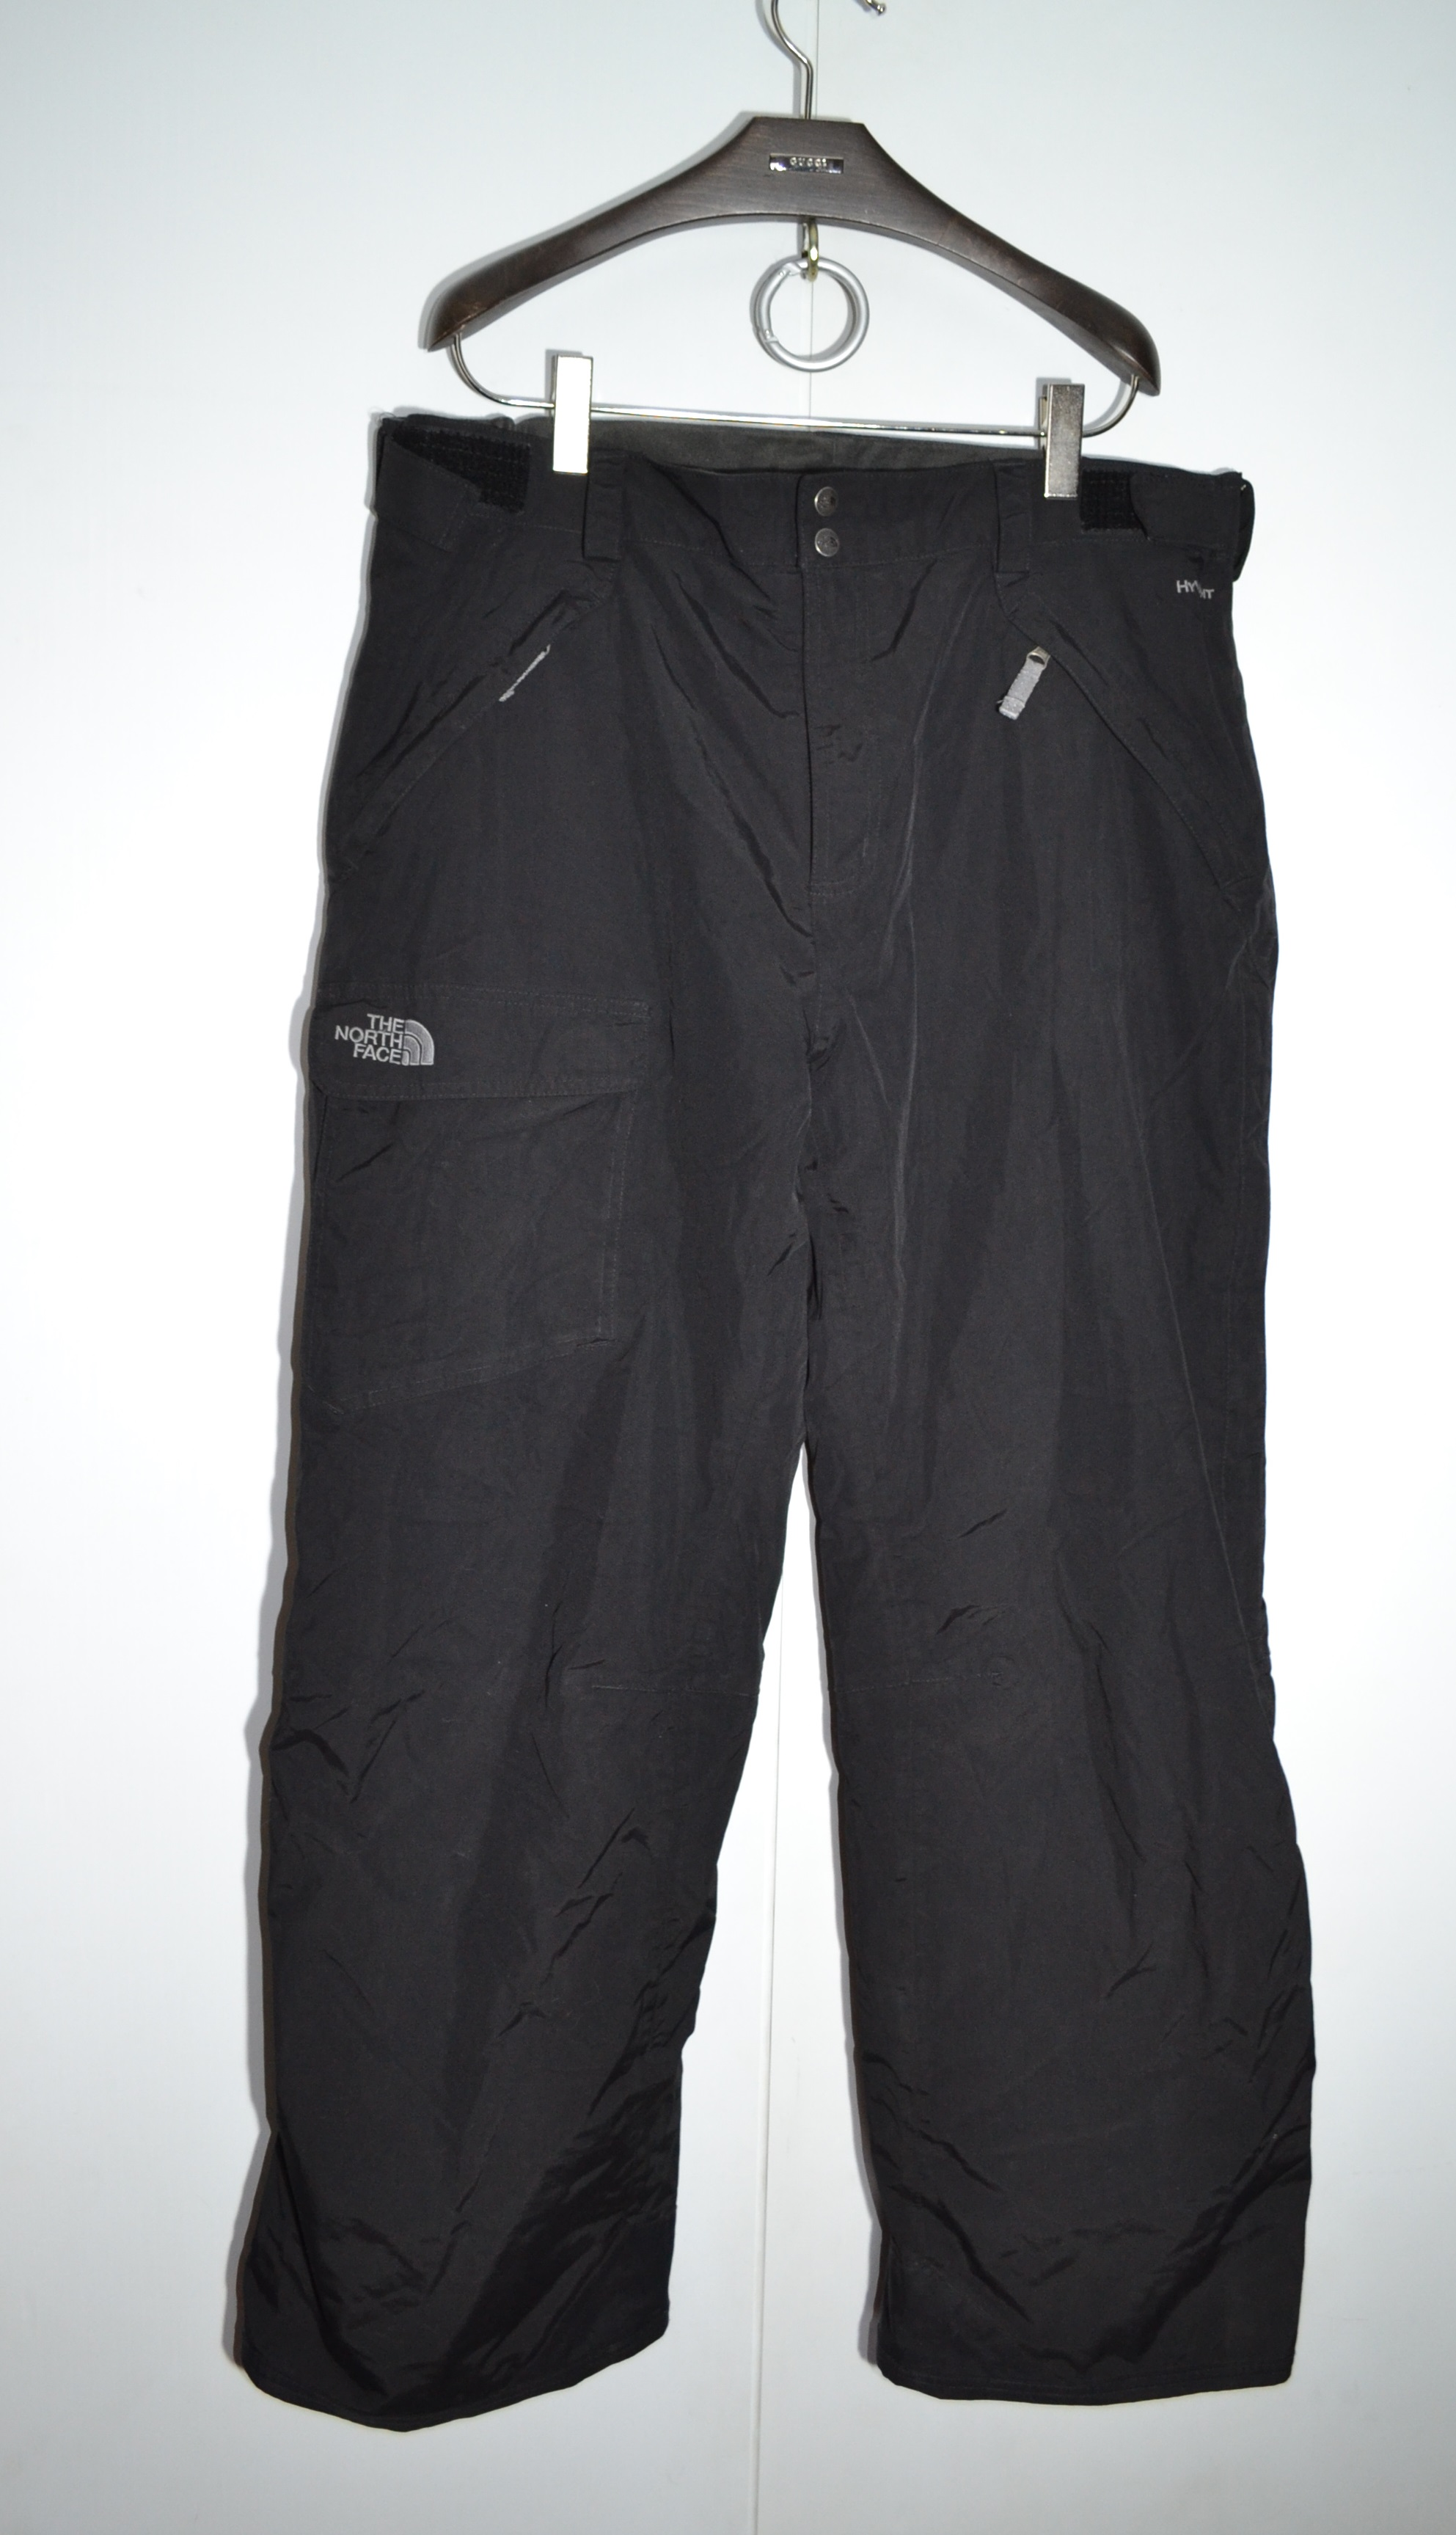 0109eada9 The North Face Winter Pants XL size W36-W38 Hyvent Ski Snowboard Cargo's